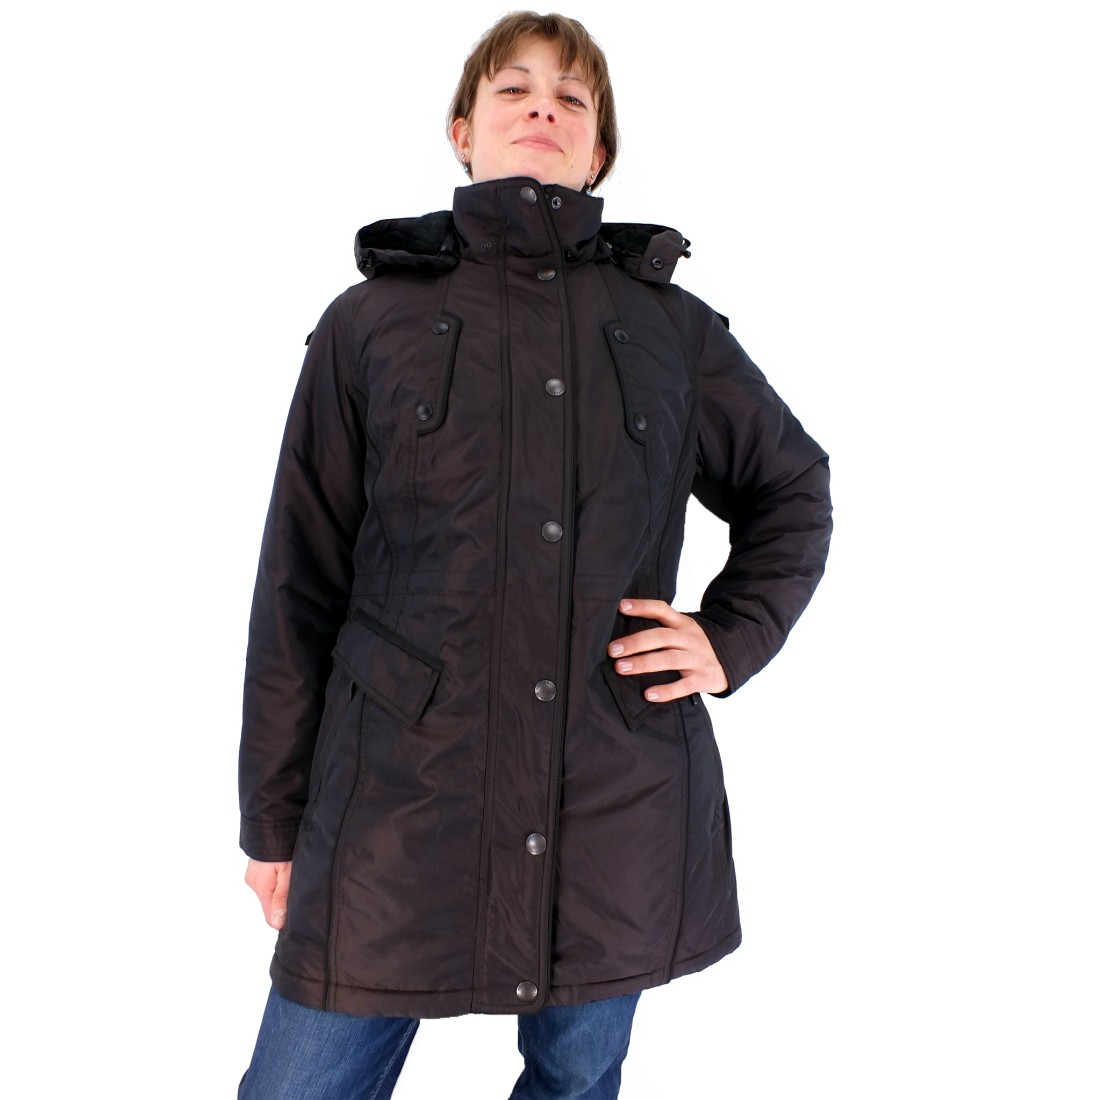 wellensteyn senses jacke winterjacke wintermantel parka damen braun ebay. Black Bedroom Furniture Sets. Home Design Ideas